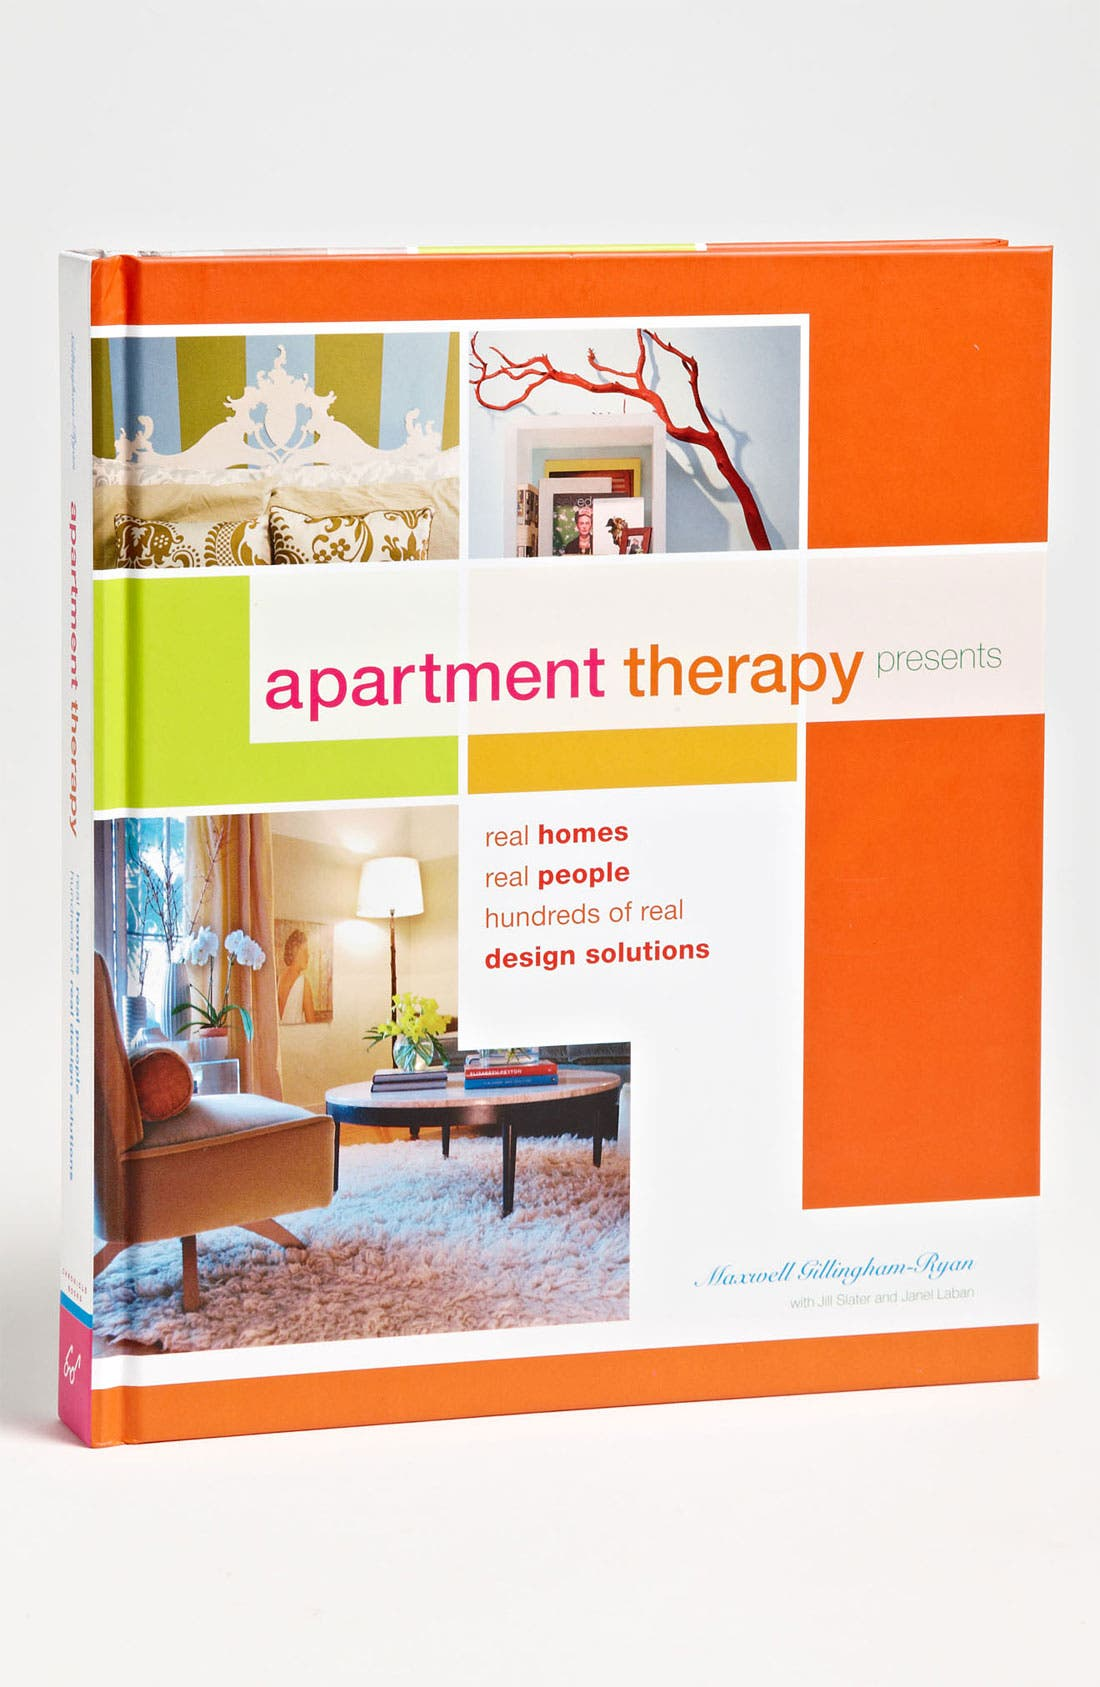 Main Image - 'Apartment Therapy Presents: Real Homes, Real People, Hundreds of Real Design Solutions' Book